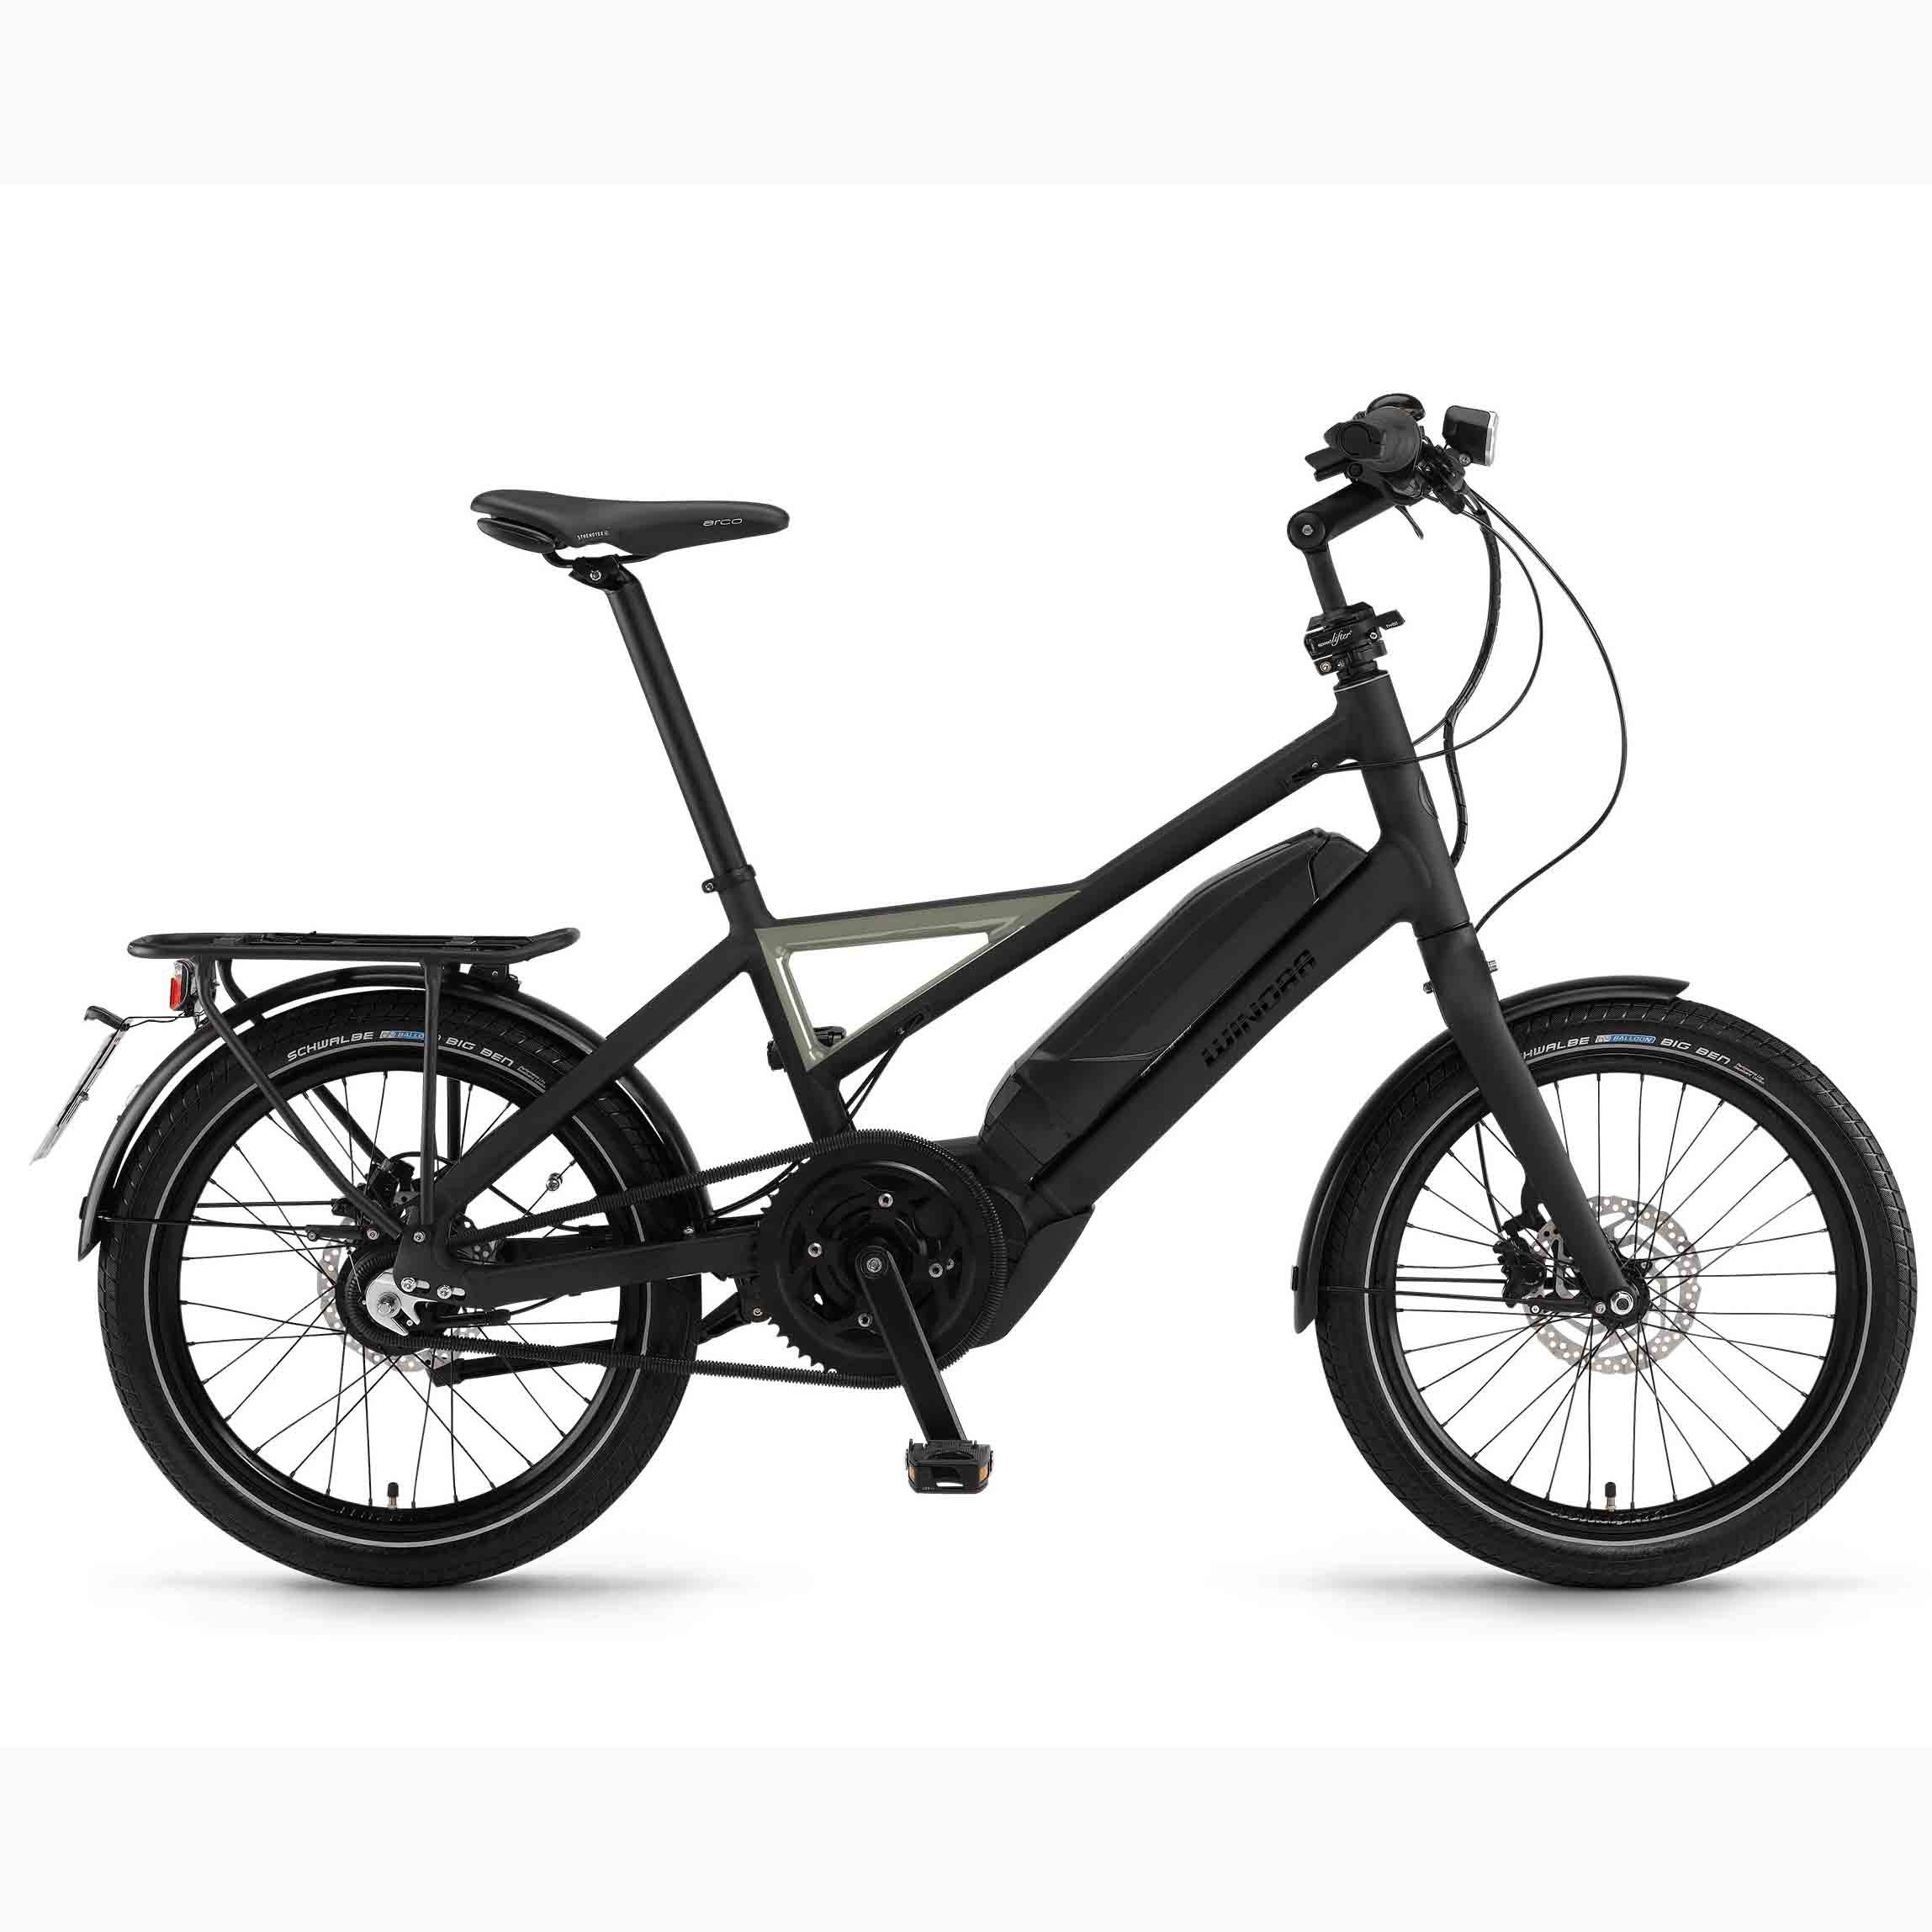 Фото Велосипед Winora Radius Speed 20″ 500Wh 45км/ч, рама 35см, 2018